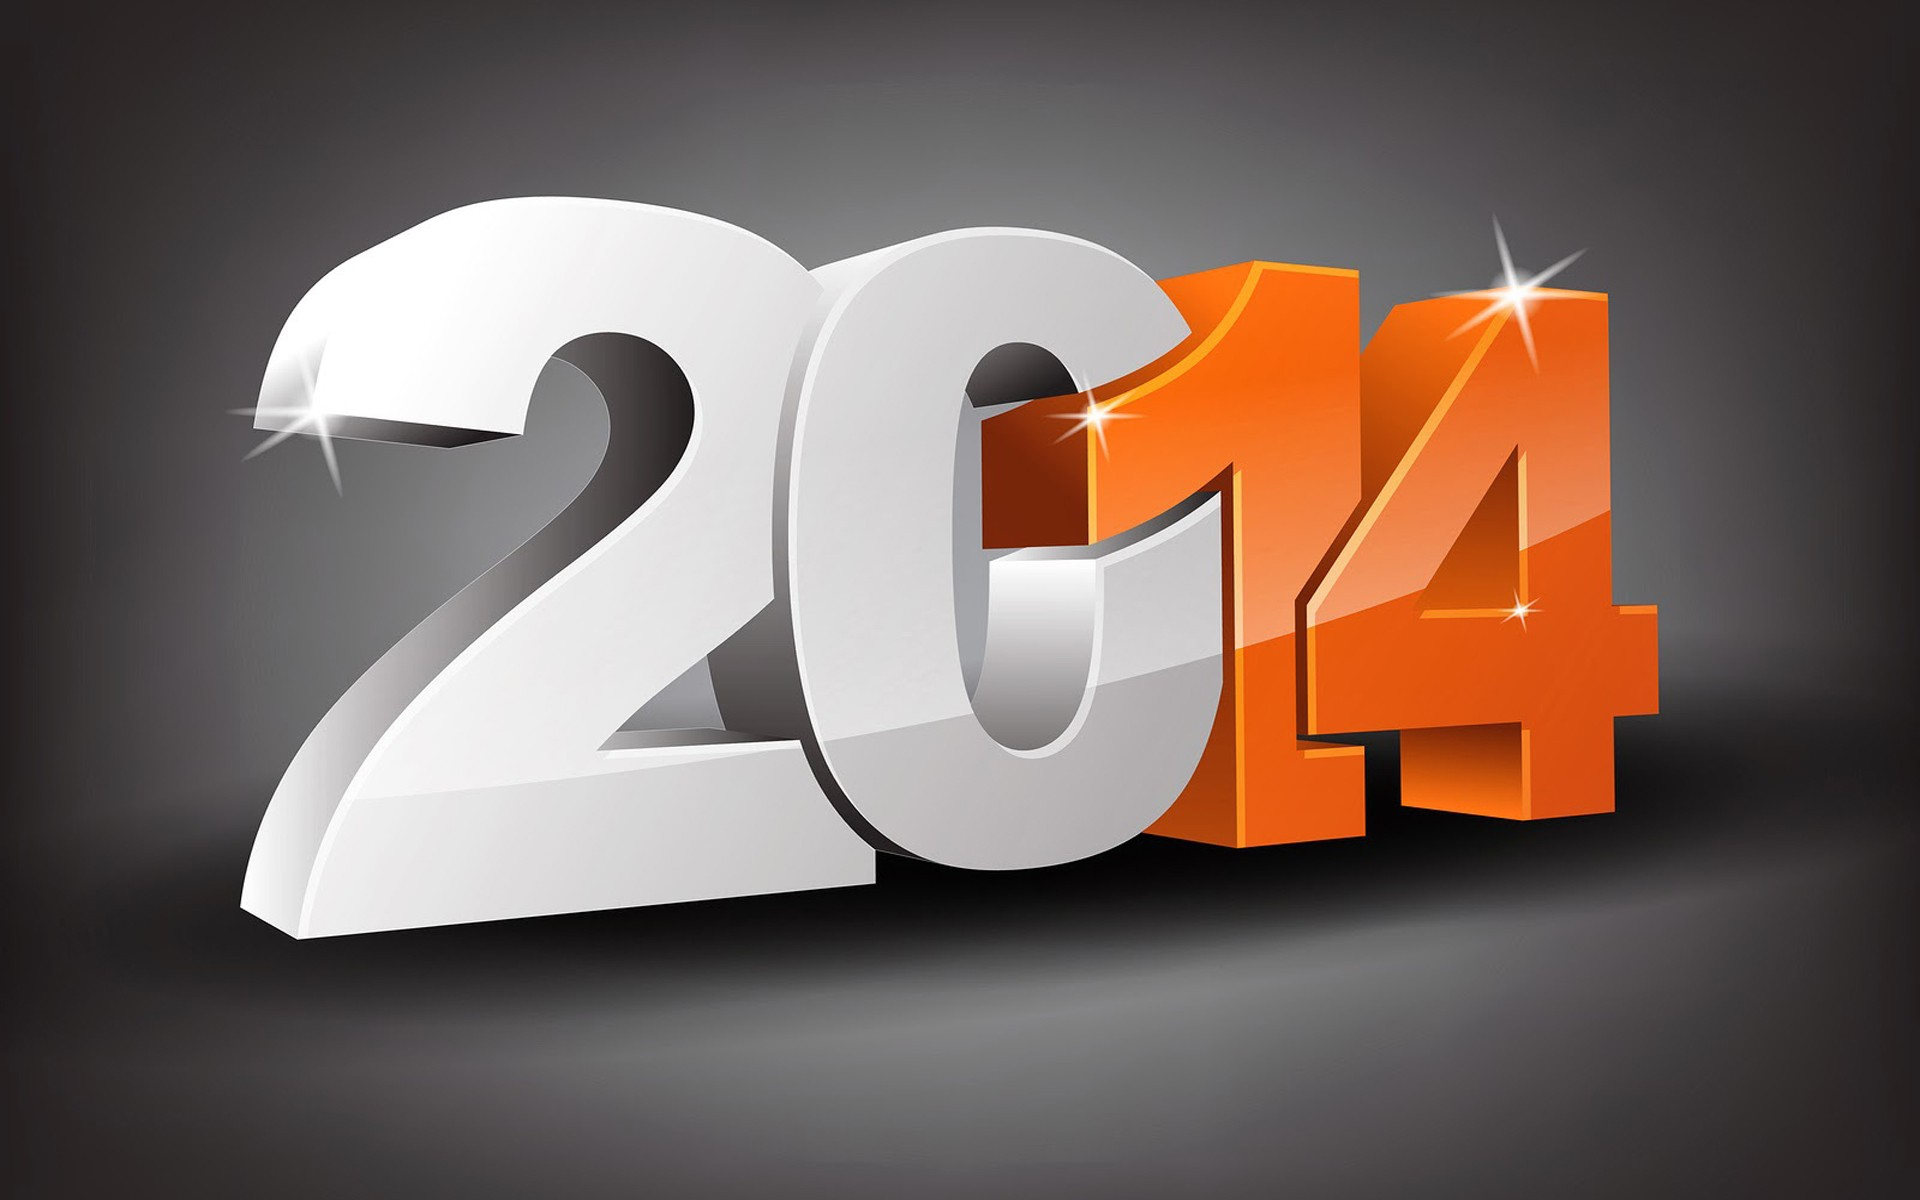 Top 5 mobile tech trends for 2014